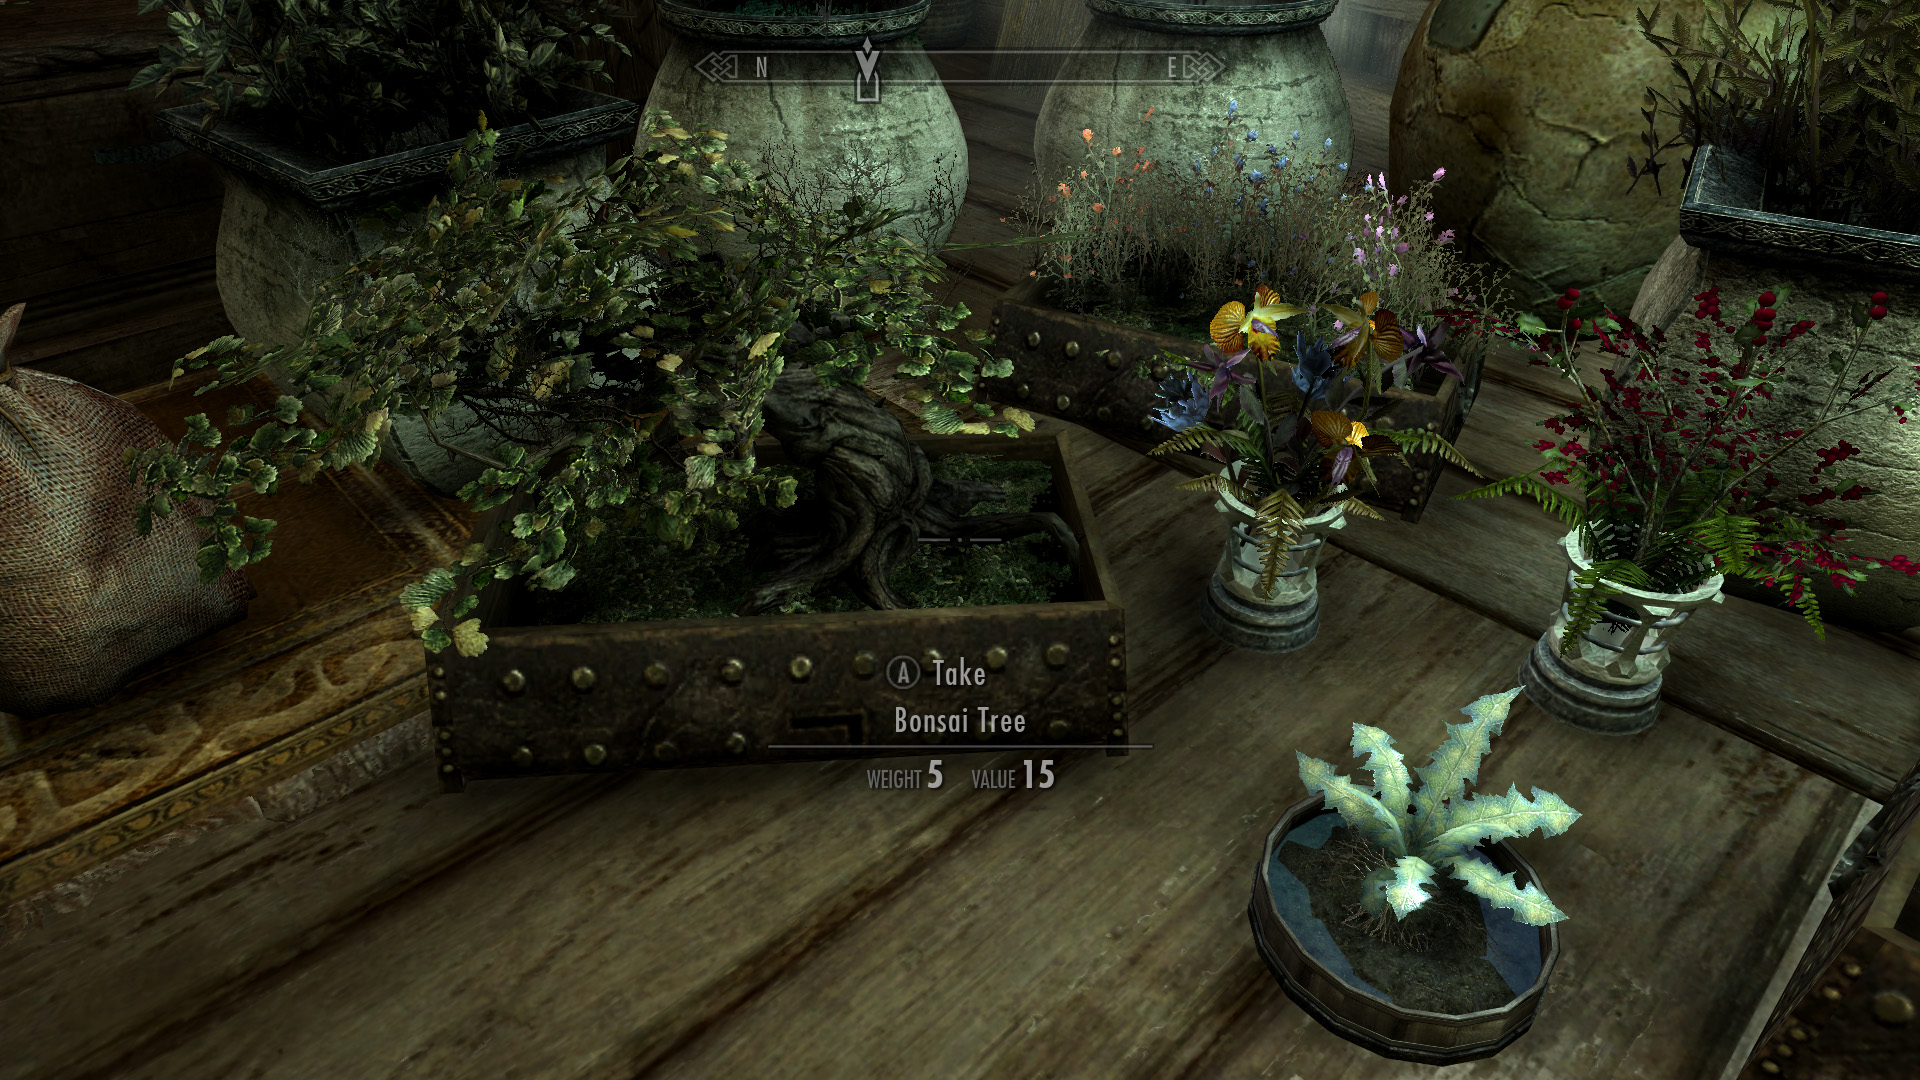 House Decorations Plants And Flowers At Skyrim Nexus Mods And